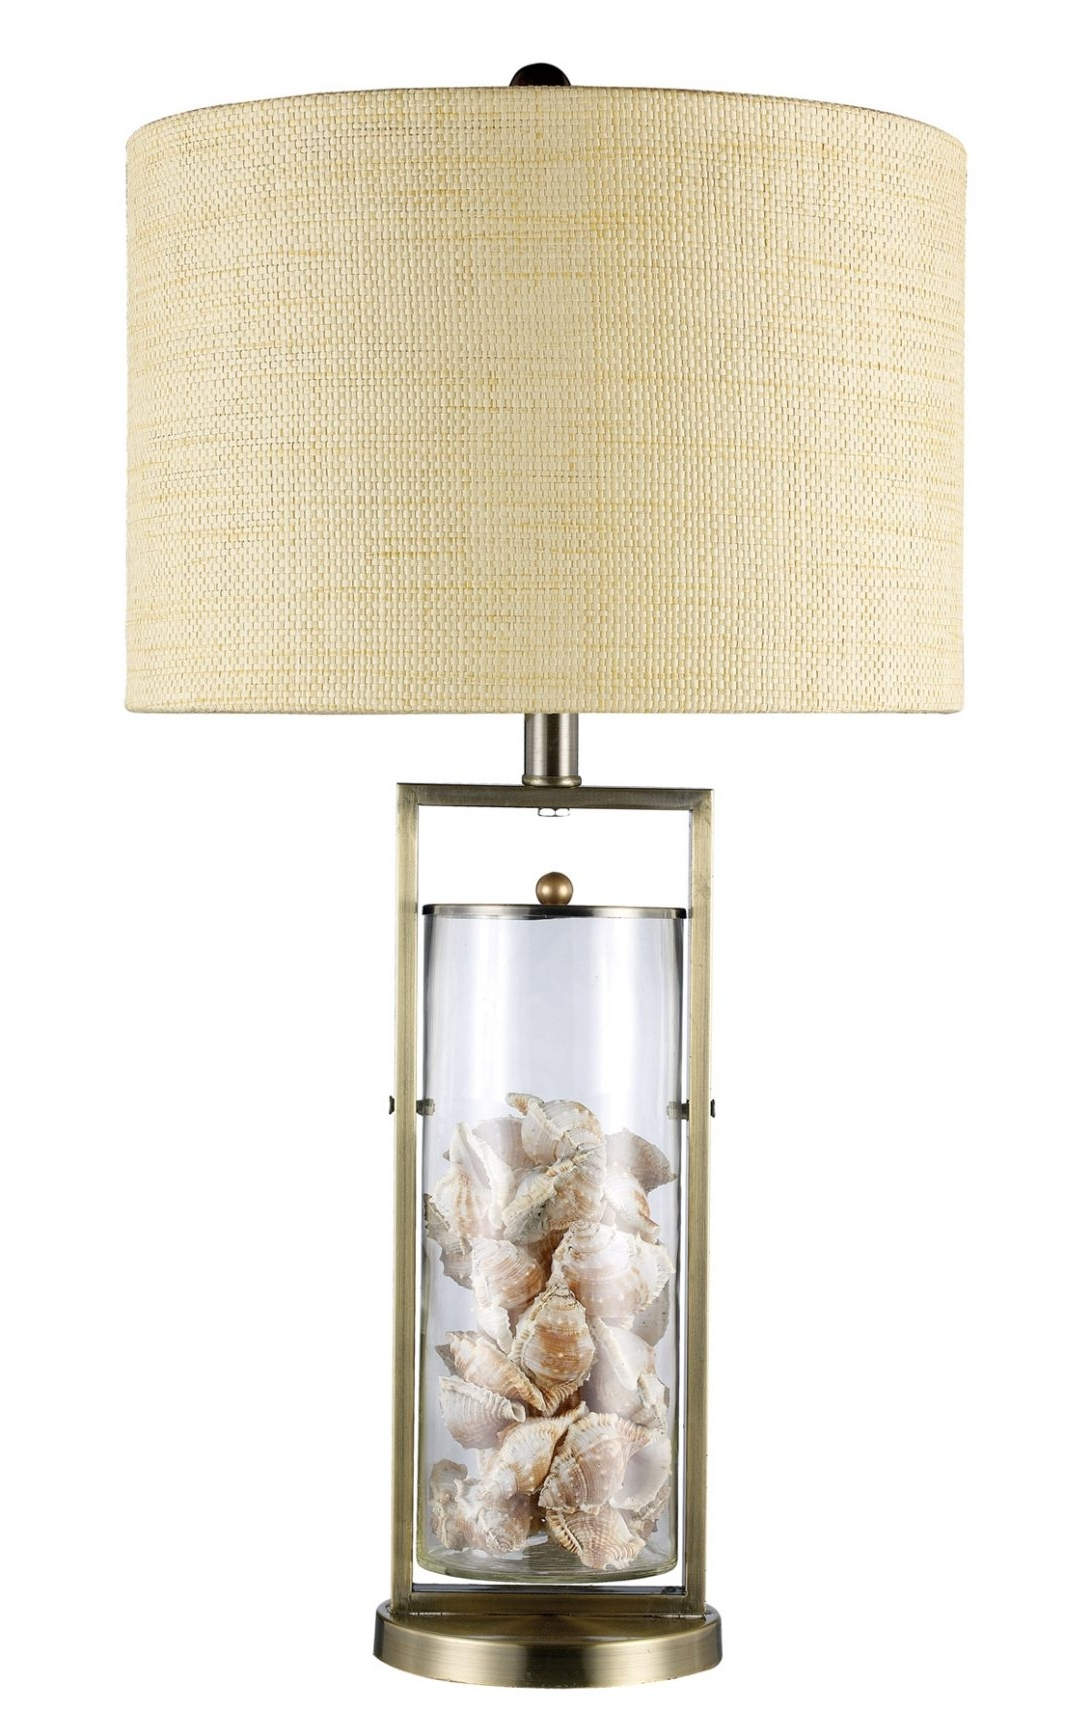 2019 Overstock Living Room Table Lamps Regarding 67 Most Perfect Modern Floor Lamps Overstock Table For Living Room (View 1 of 20)